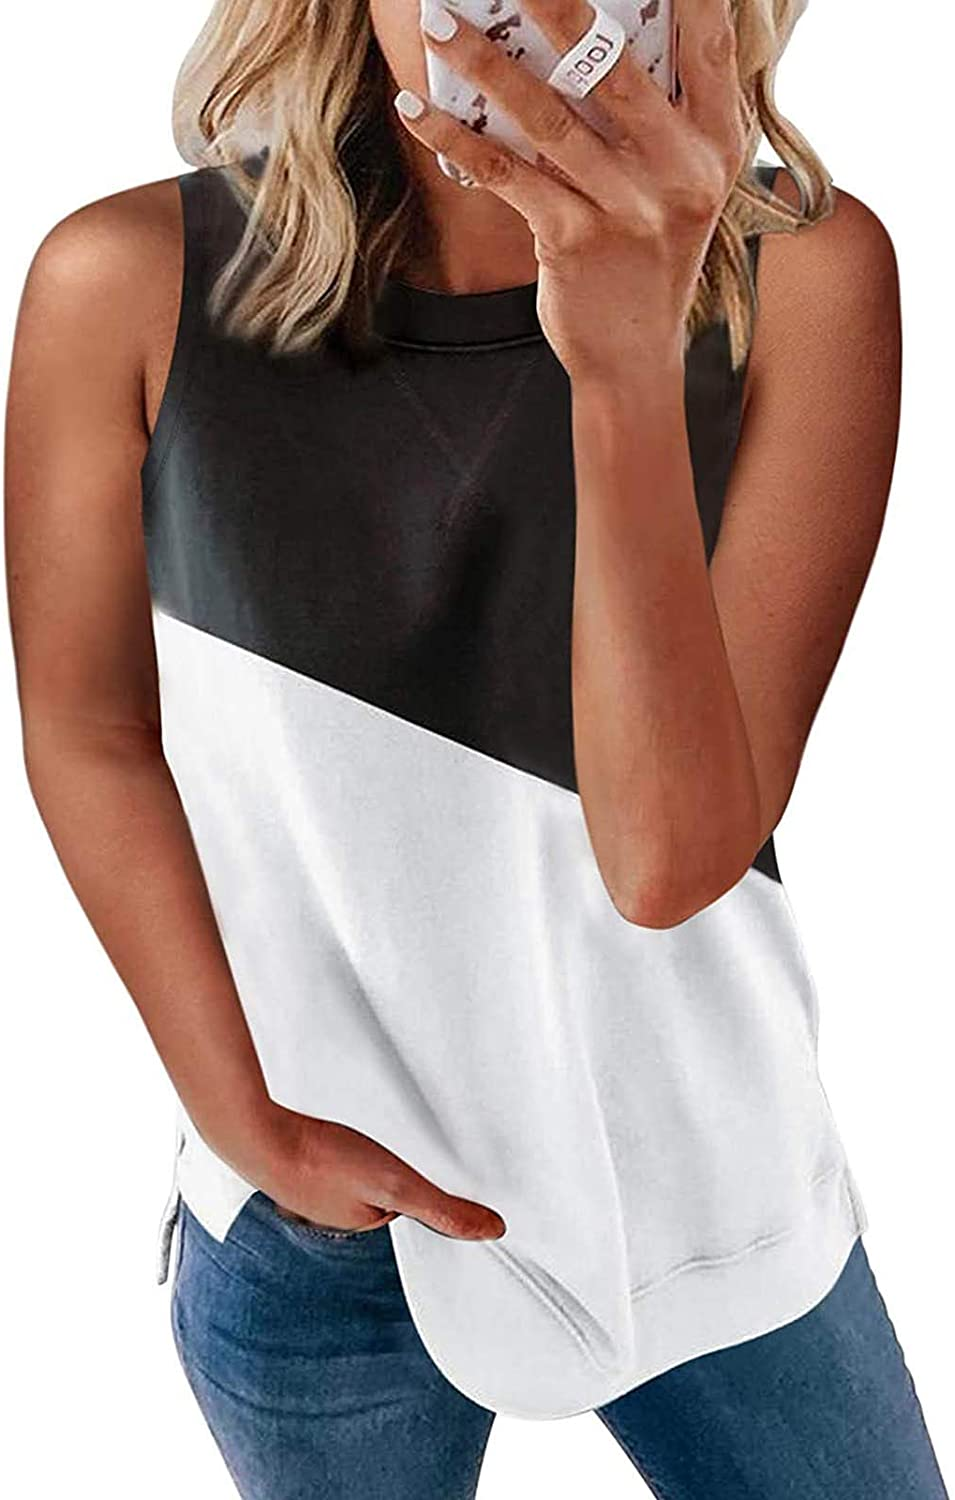 AODONG Tank Tops for Women, Womens Summer Casual Tank Tops Sleeveless Loose Fit Workout Blouses Shirts Vest Tunics